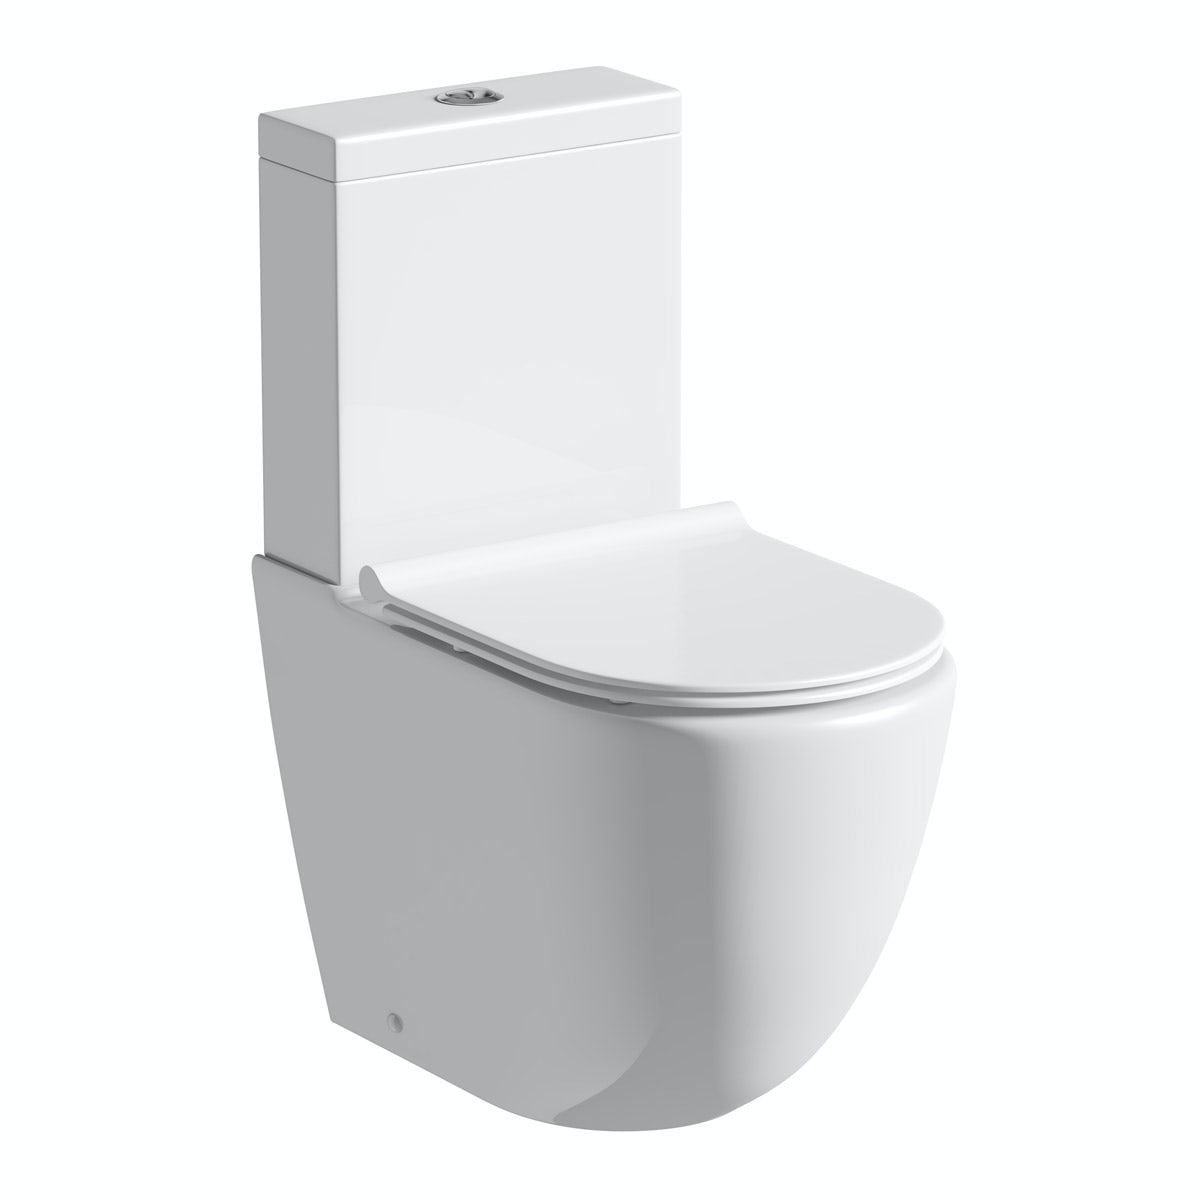 Mode Harrison rimless close coupled toilet with slimline soft close seat with pan connector